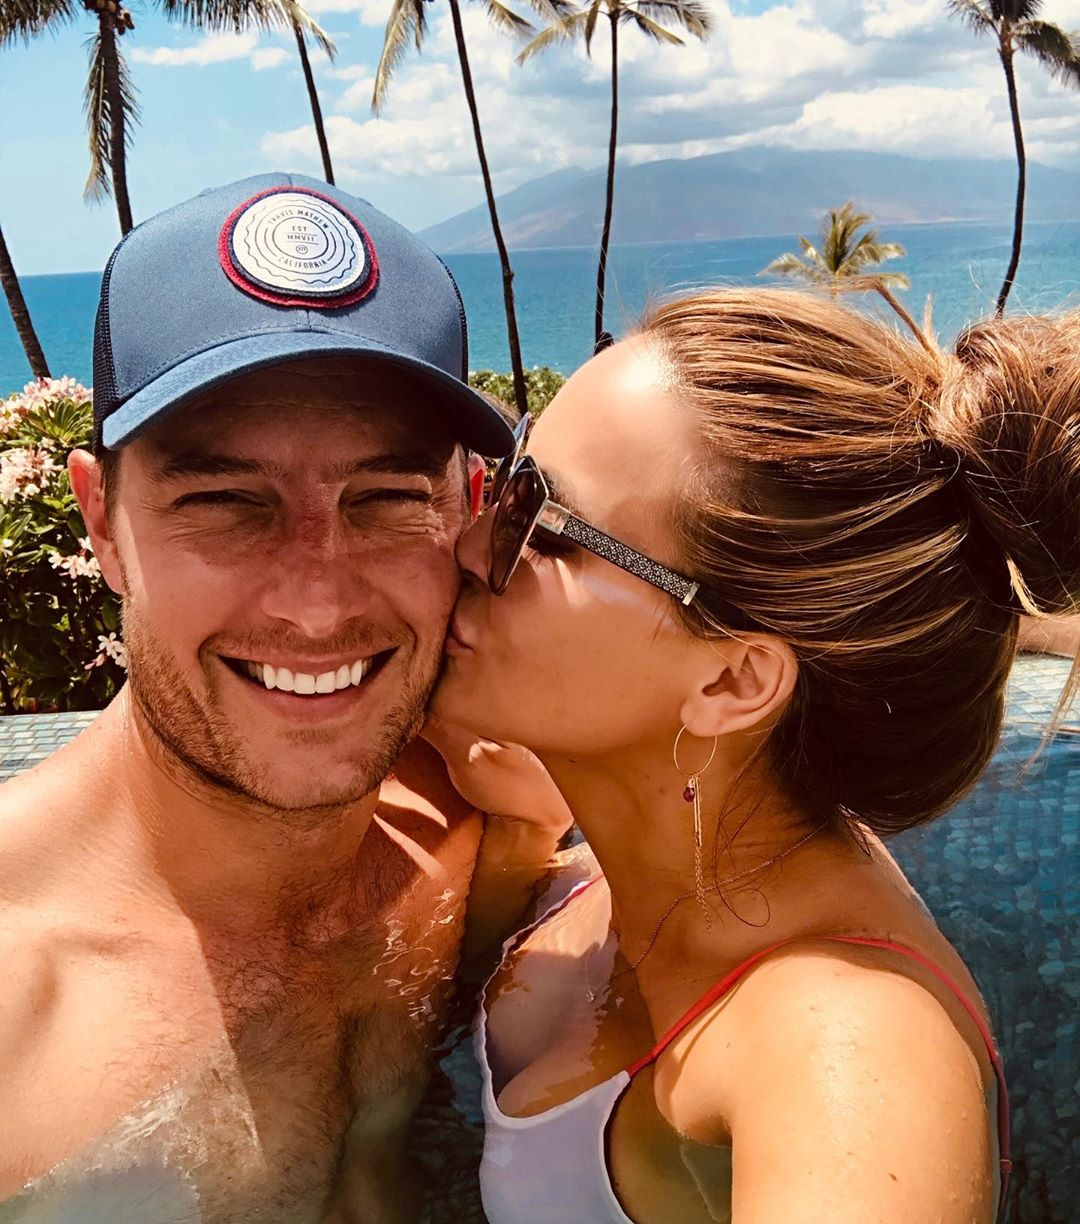 Chrishell Stause and Justin Harley Kissing in a Pool